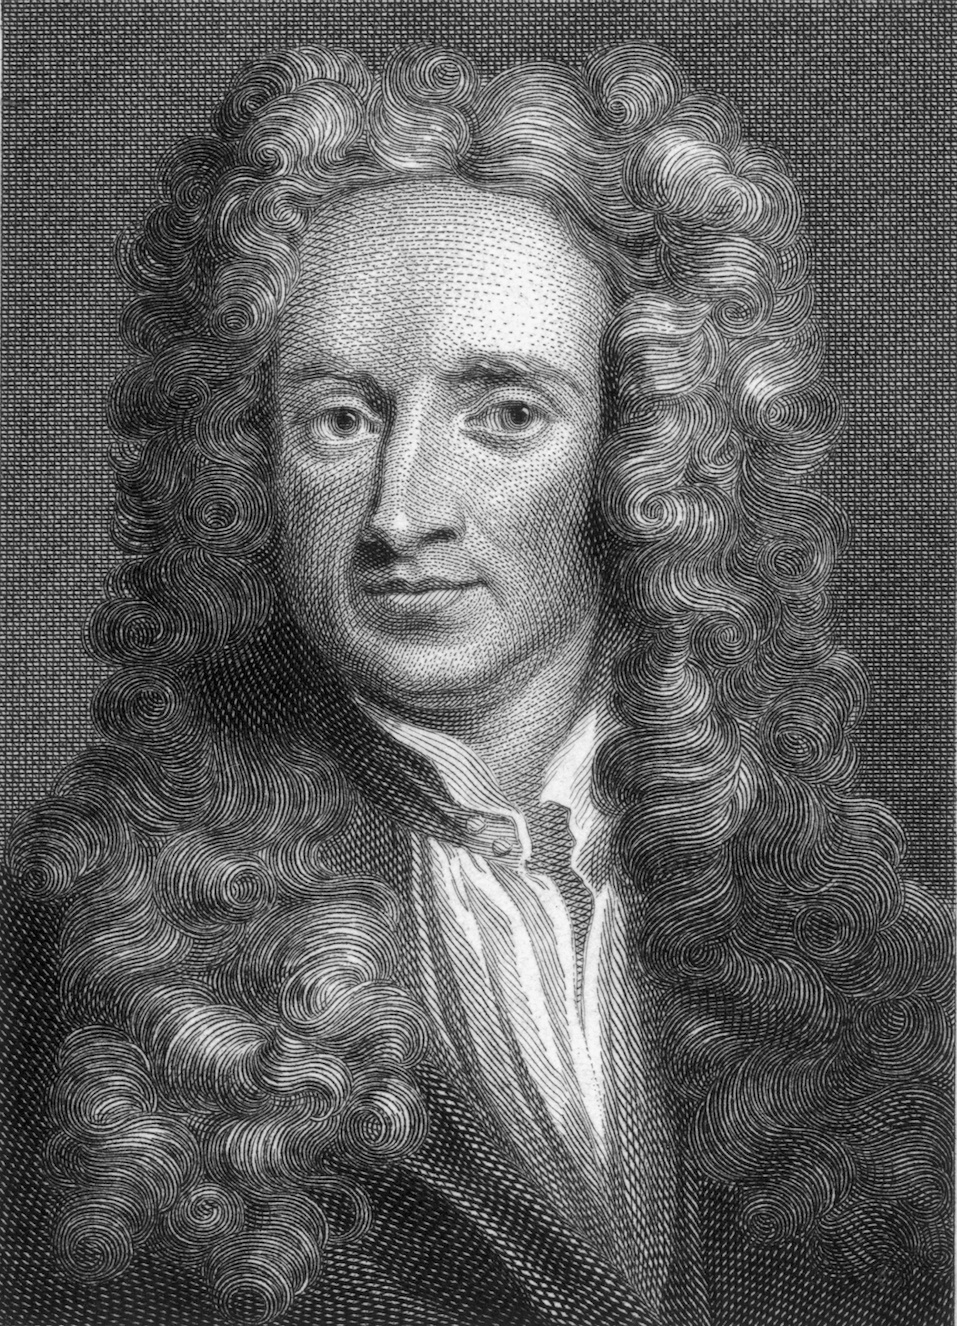 English physicist and mathematician Sir Isaac Newton